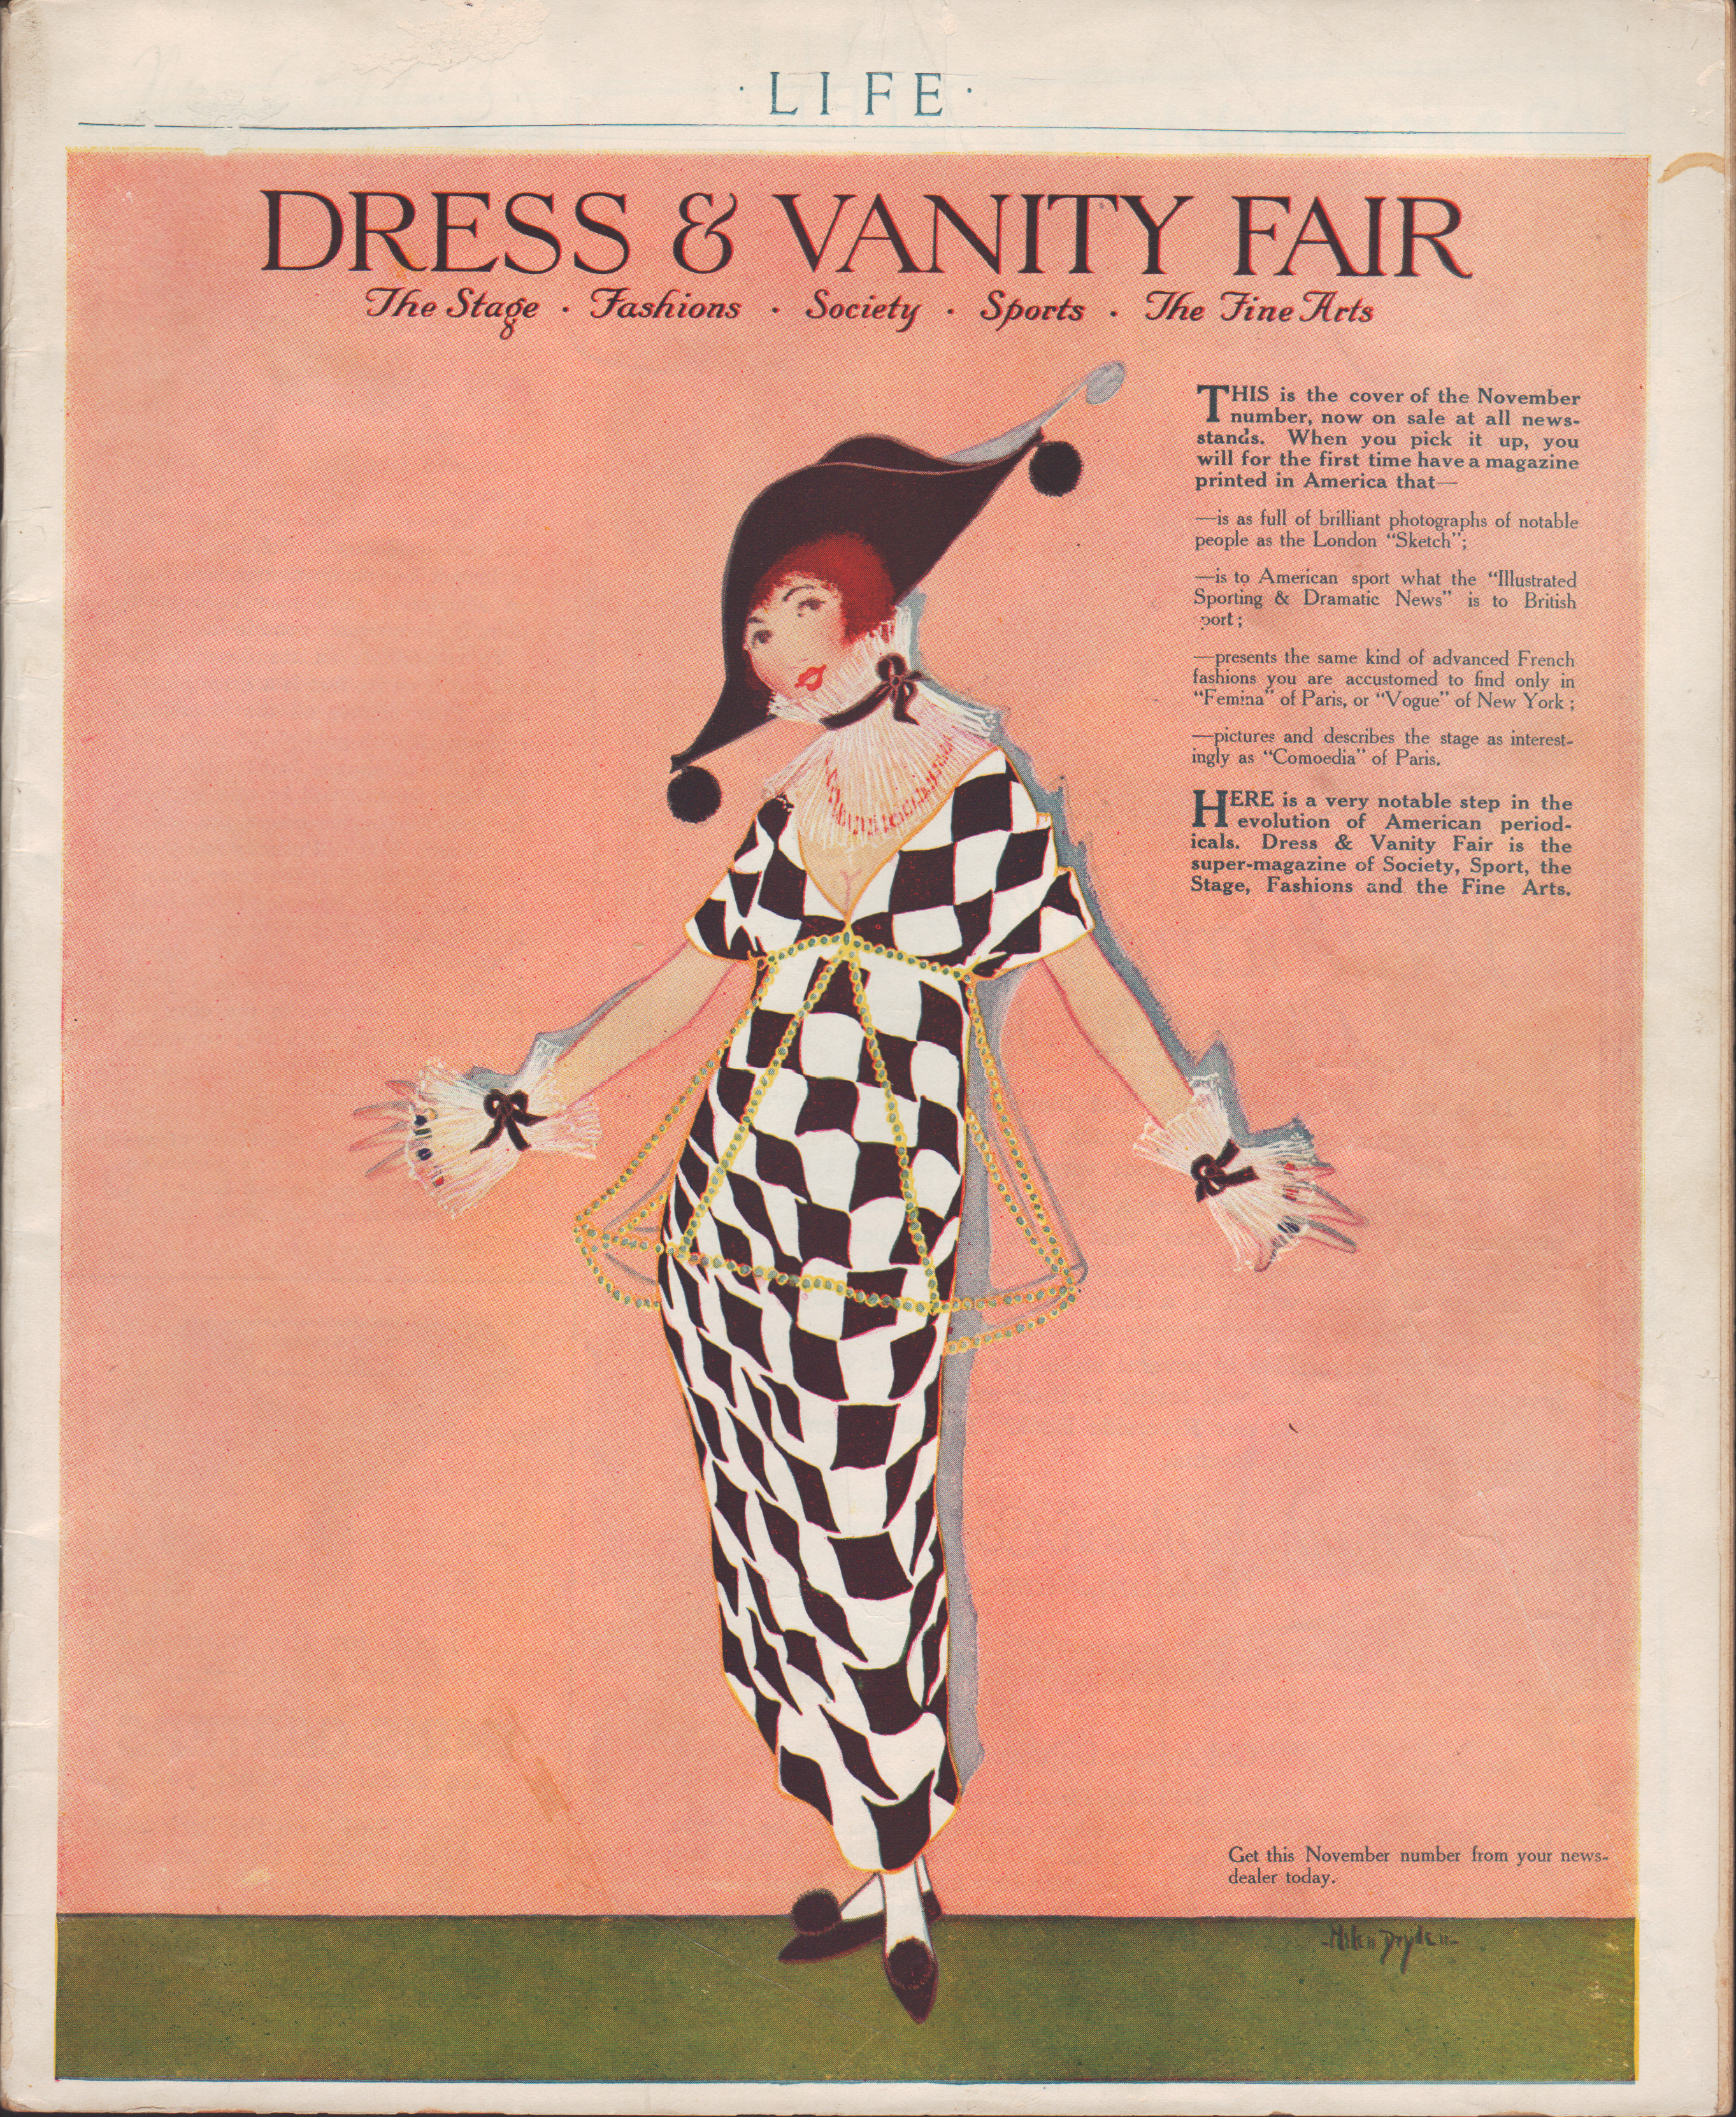 Image for Color Advertisement for Vanity Fair from Life Magazine, November 6, 1913